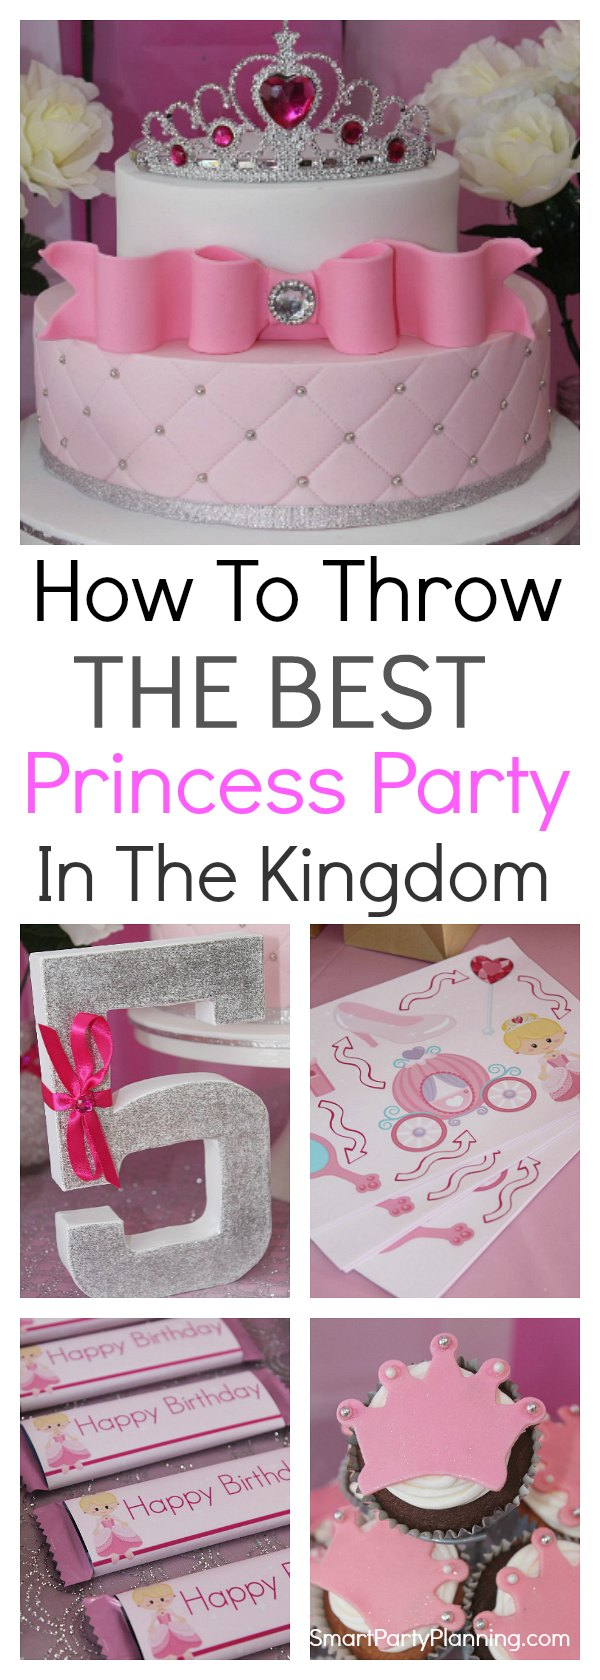 A stunning Princess birthday party for girls, that they are bound to love. Includes DIY ideas on a budget for decorations, food and fun activities. You will soon have the best Princess party in the kingdom. #Princessbirthdayparty #Forgirls #Onabudget #Fun